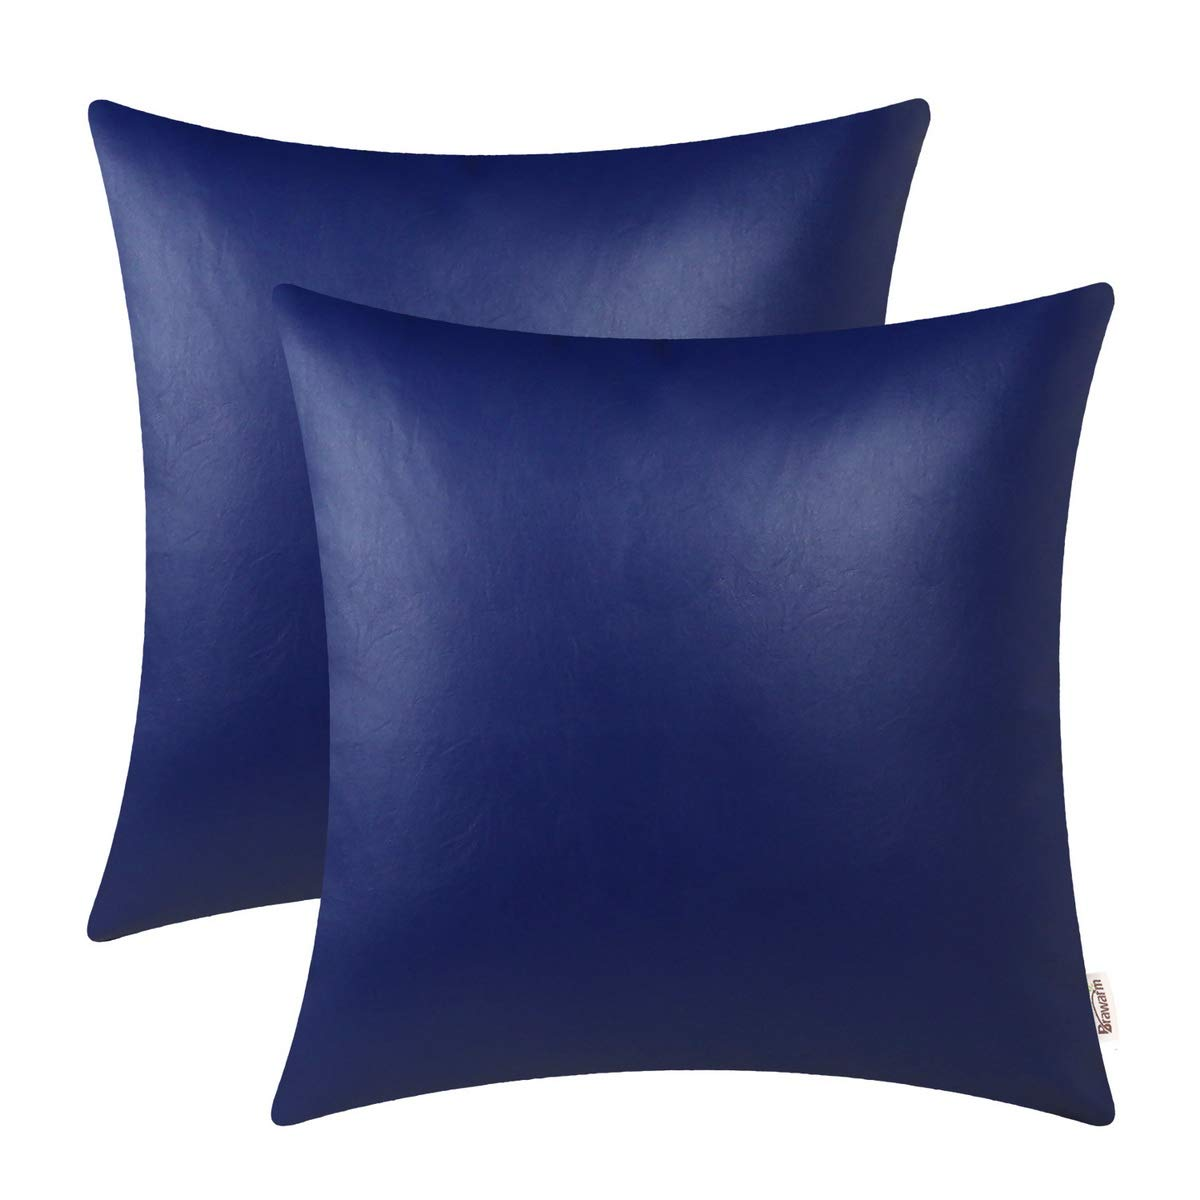 BRAWARM Pack of 2 Cozy Throw Pillow Covers Cases for Couch Sofa Home Decoration Solid Dyed Soft Faux Leather Both Sides 18 X 18 Inches Royal Blue